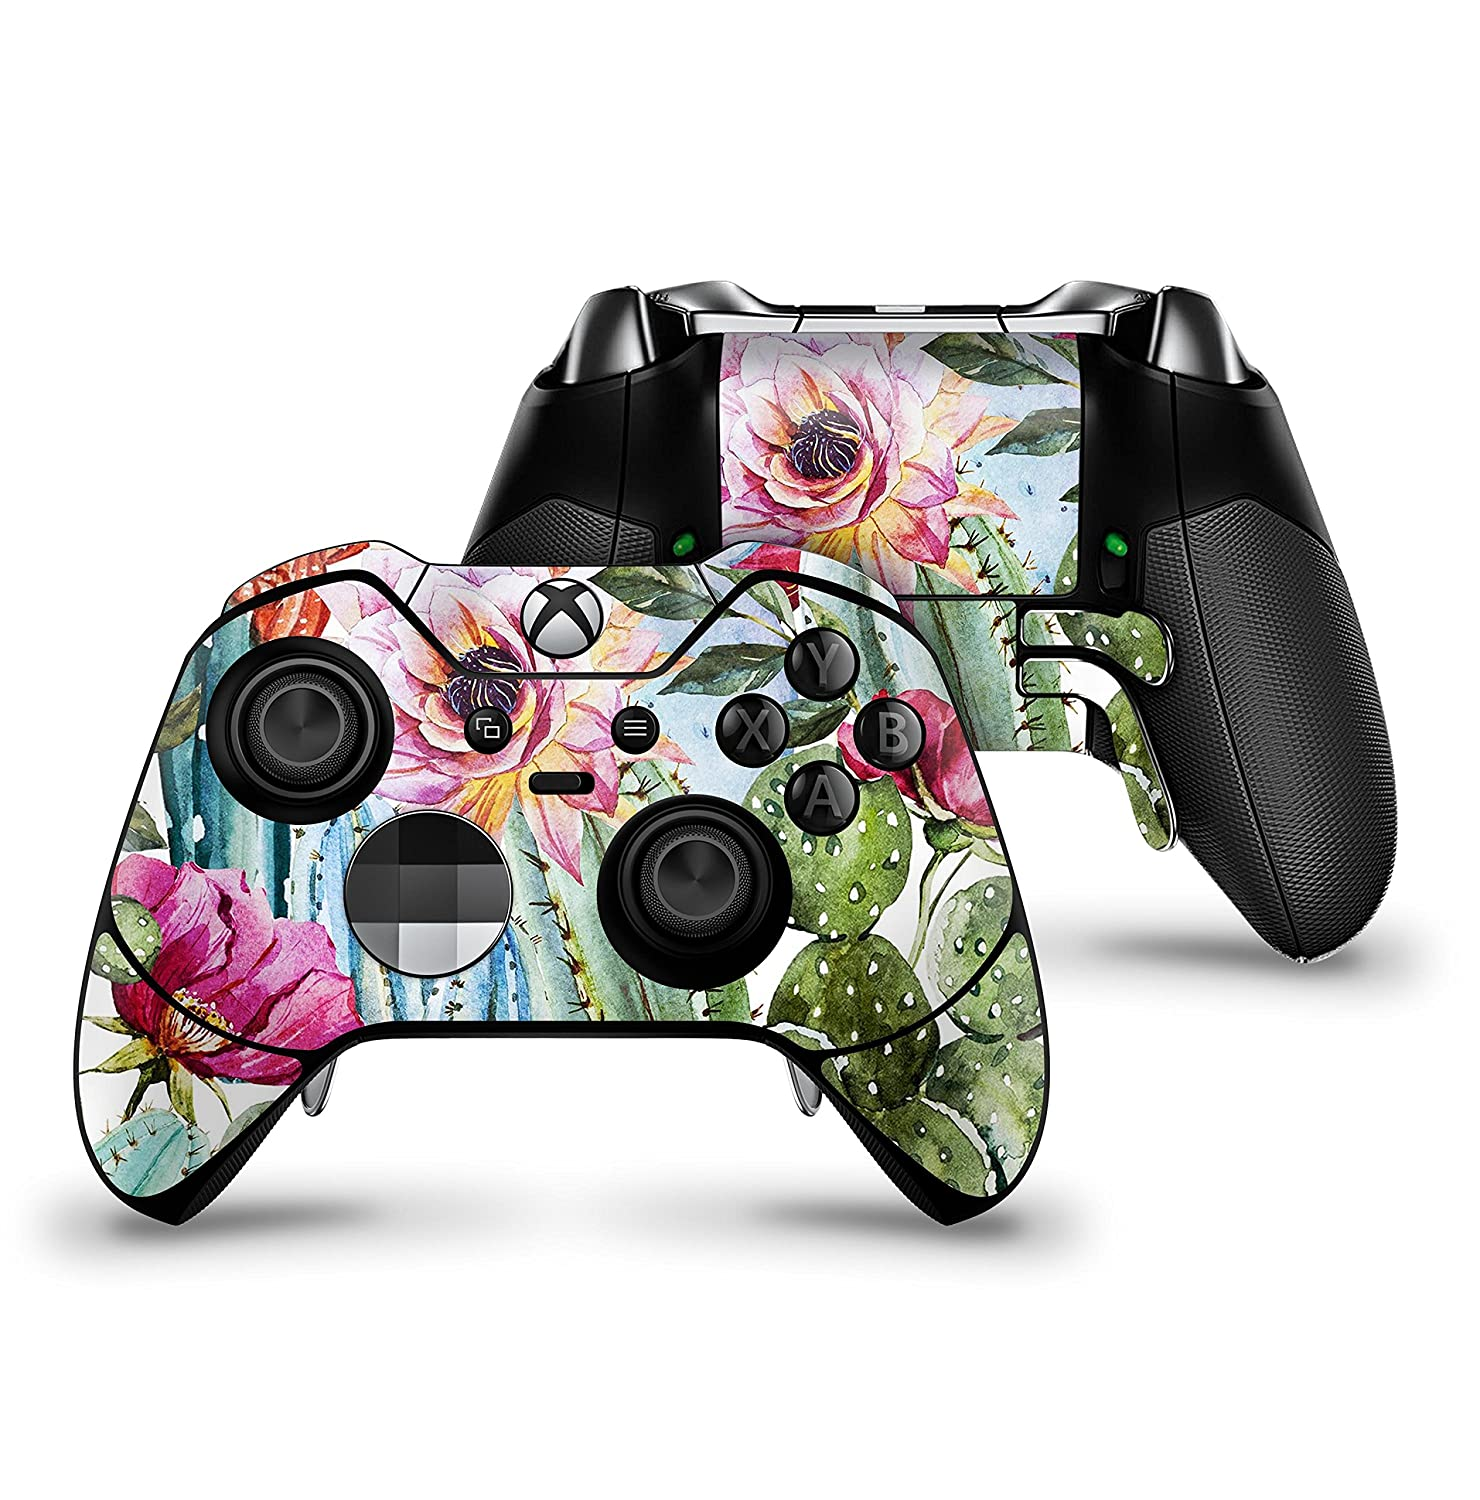 Vintage Watercolor Cactus Bloom - Protective Vinyl DesignSkinz Decal Sticker Skin-Kit for the Microsoft Xbox ONE Elite Controller